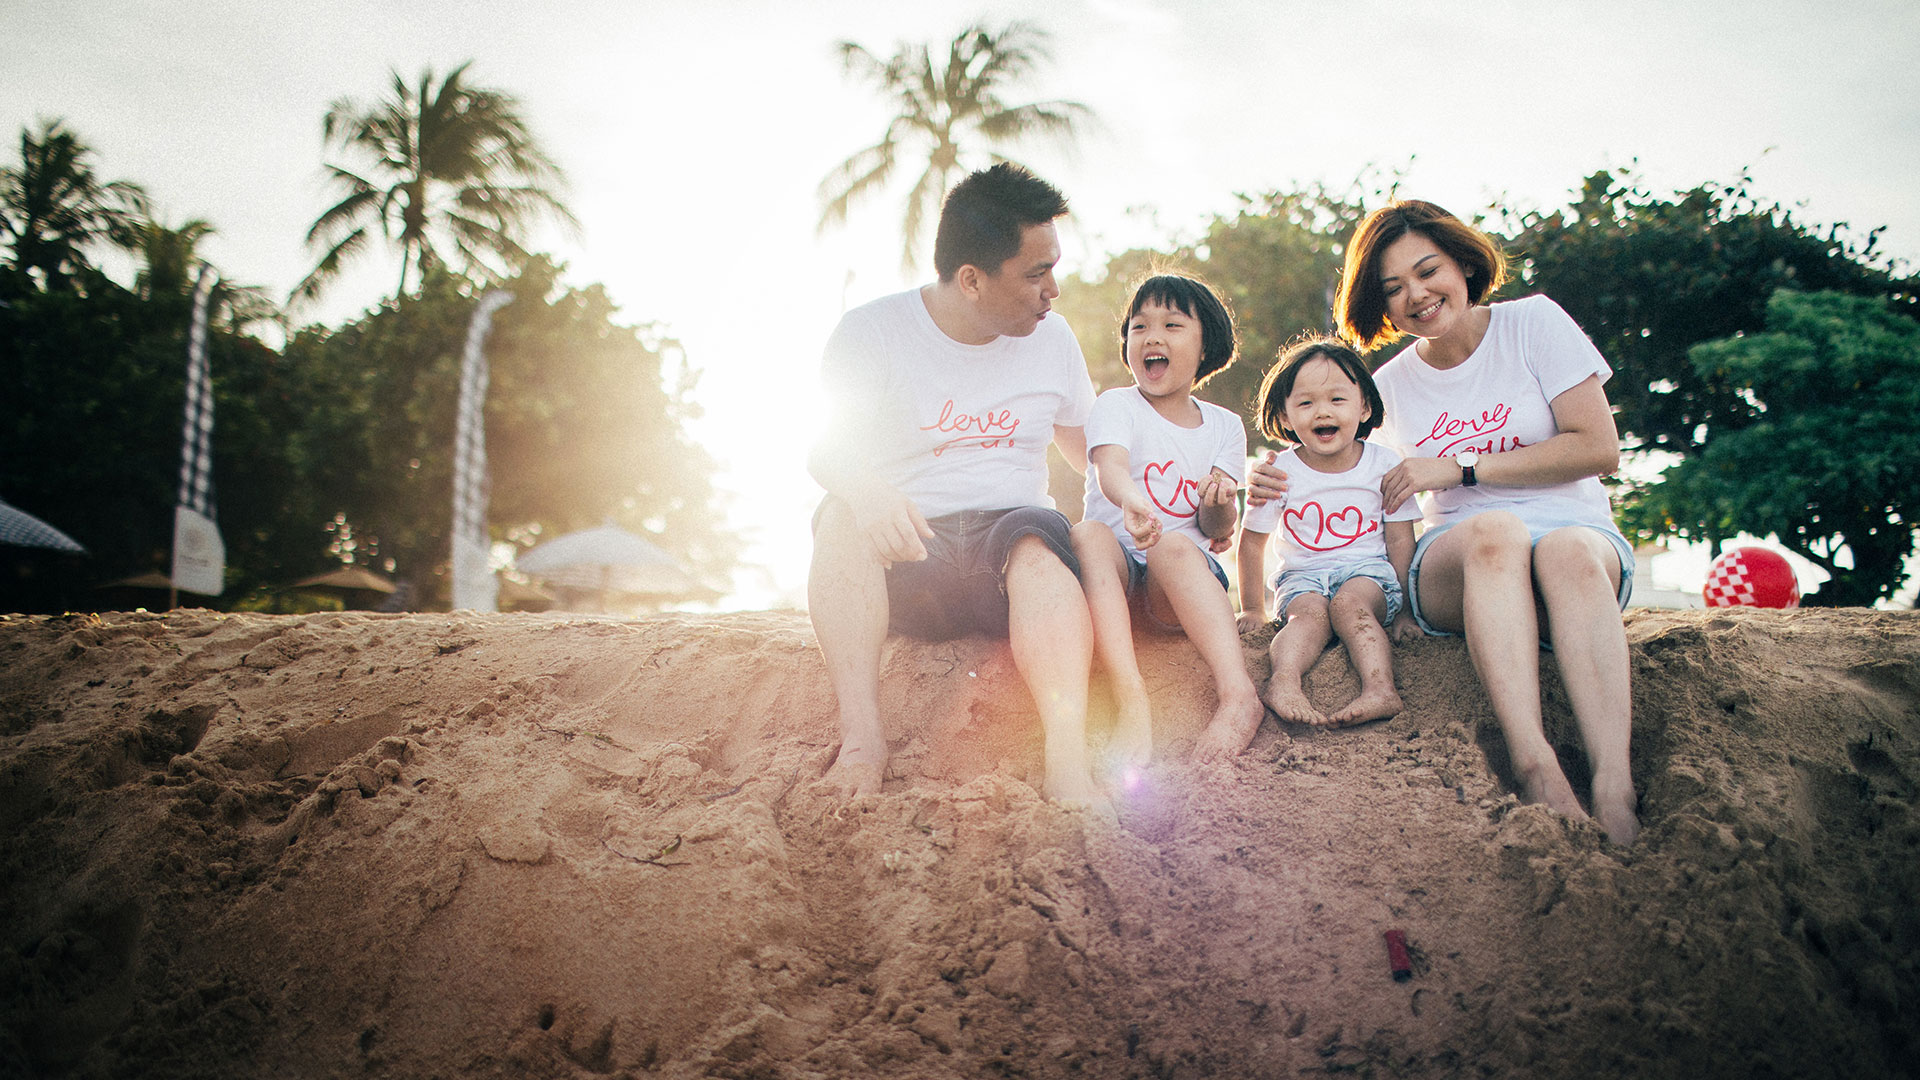 Giokleng, her husband, and 2 sweety girls are a small family from Singapore. They came to Bali for...